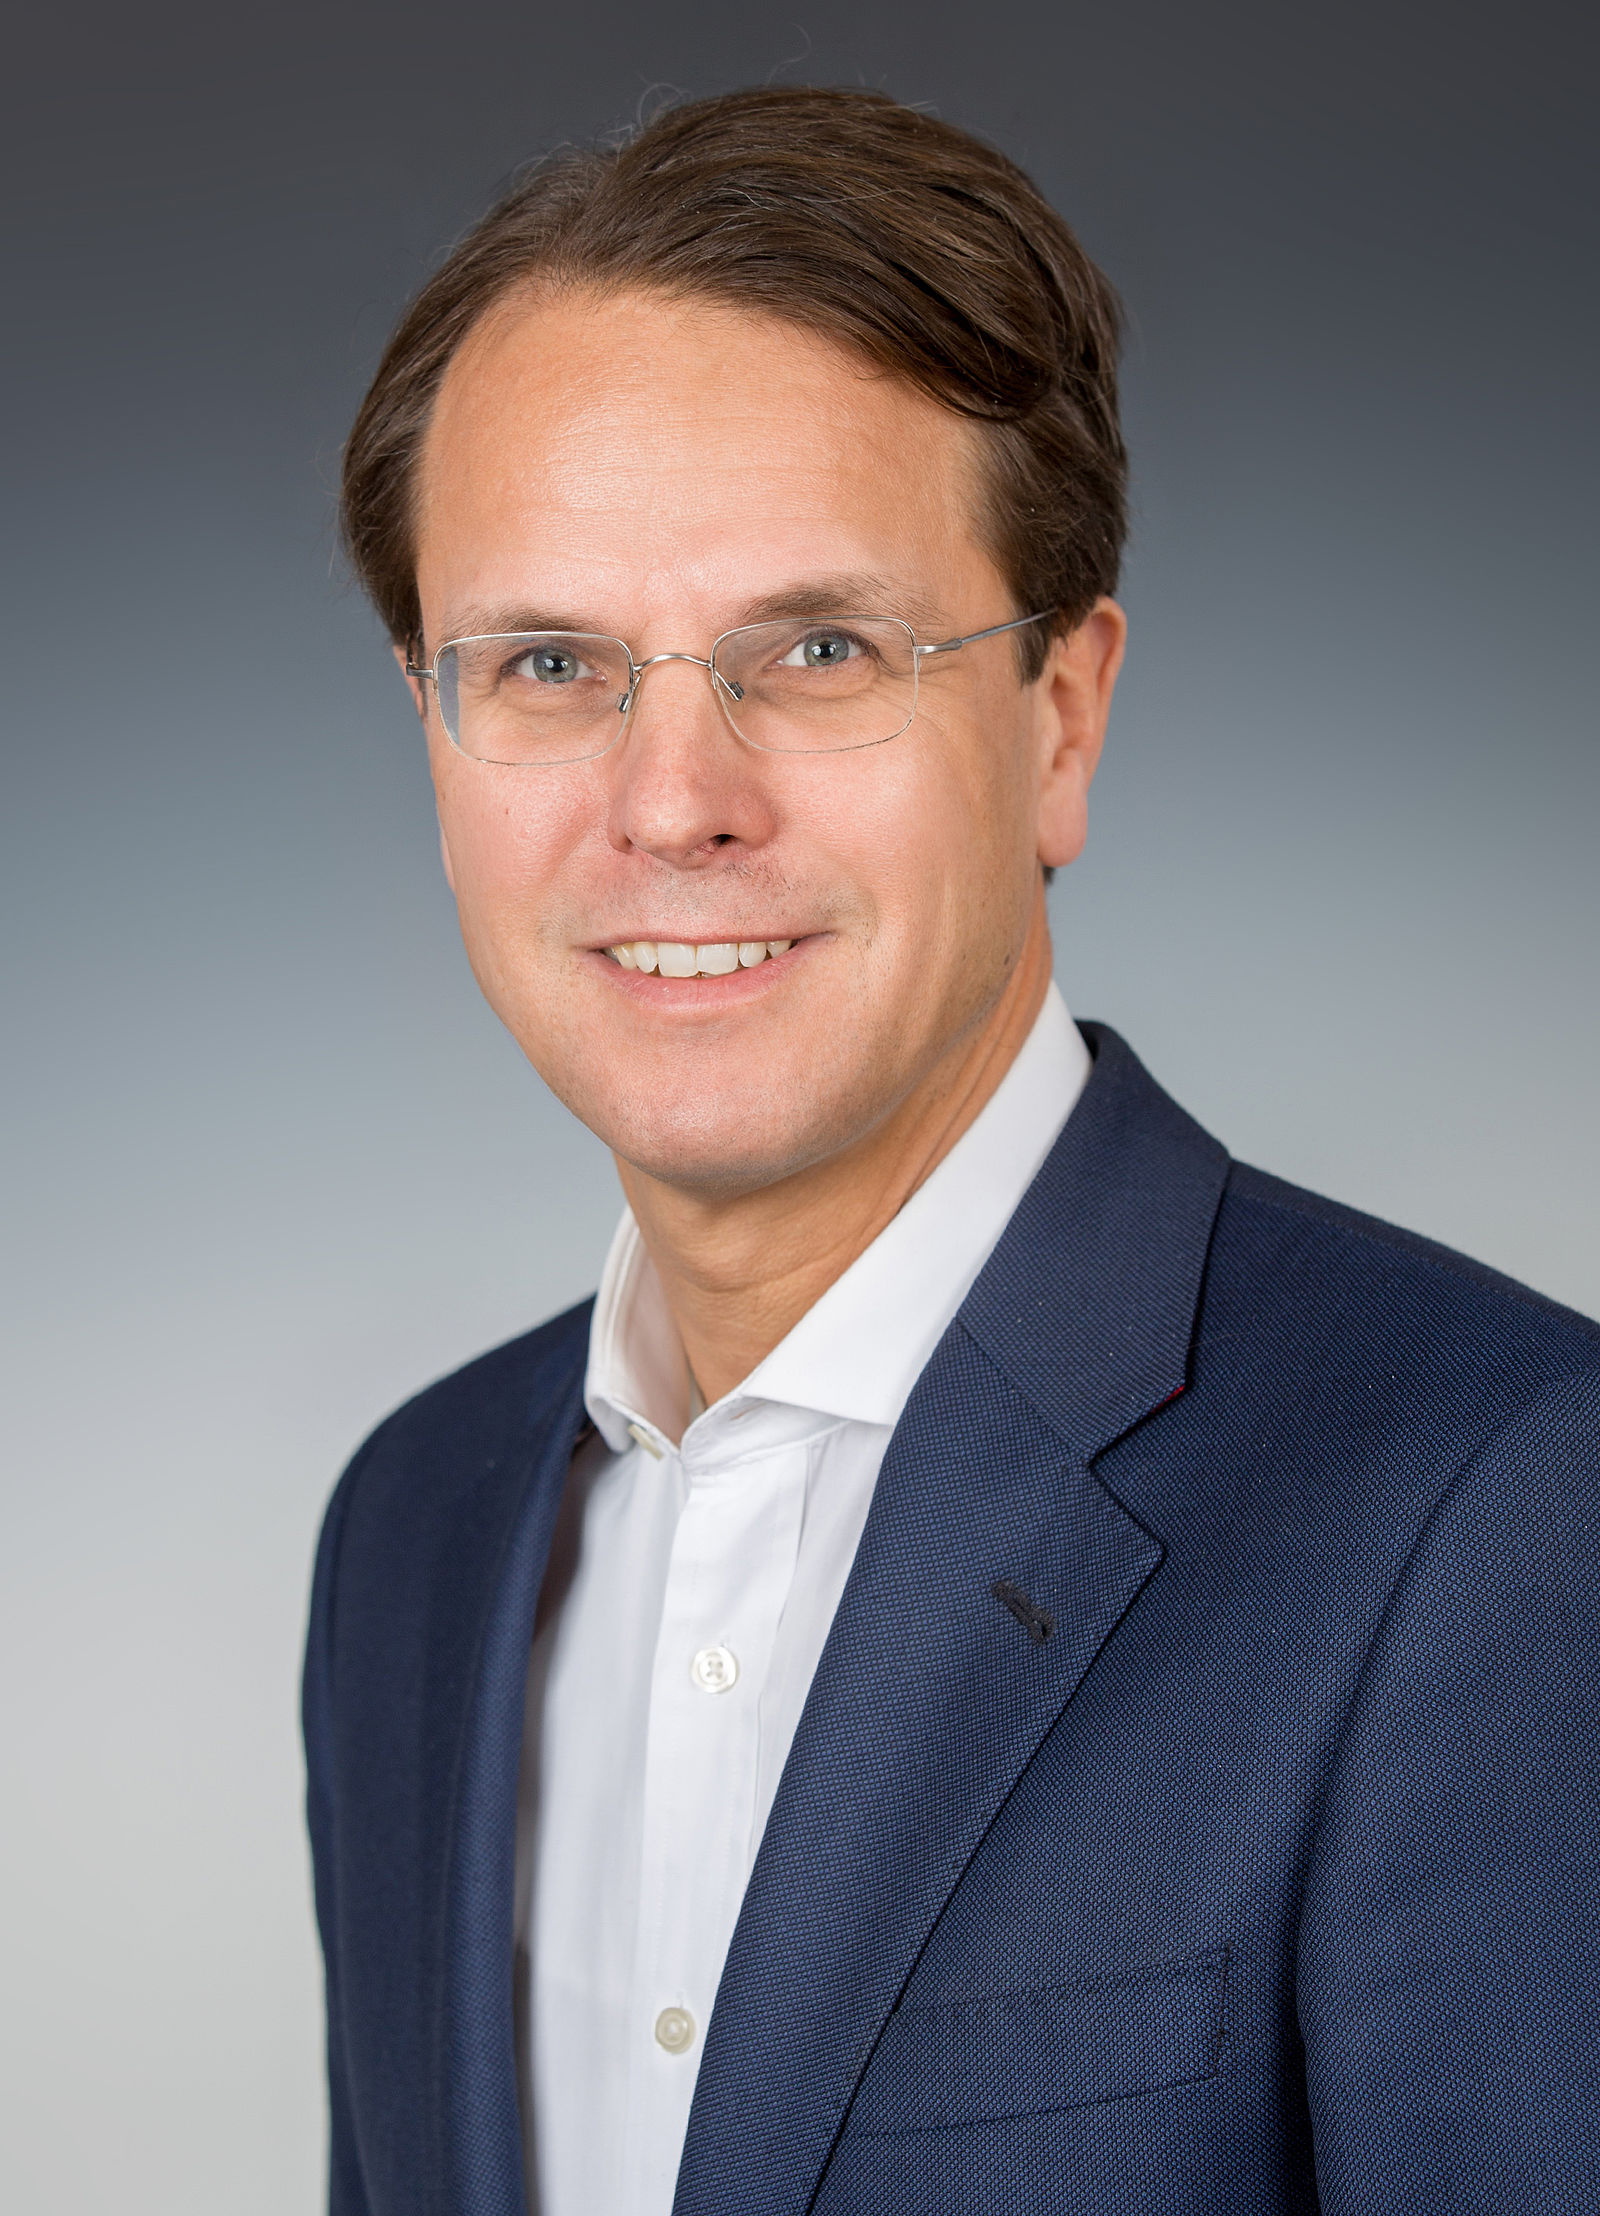 Dr. Robert Gutsche, future CFO of Röhlig Logistics